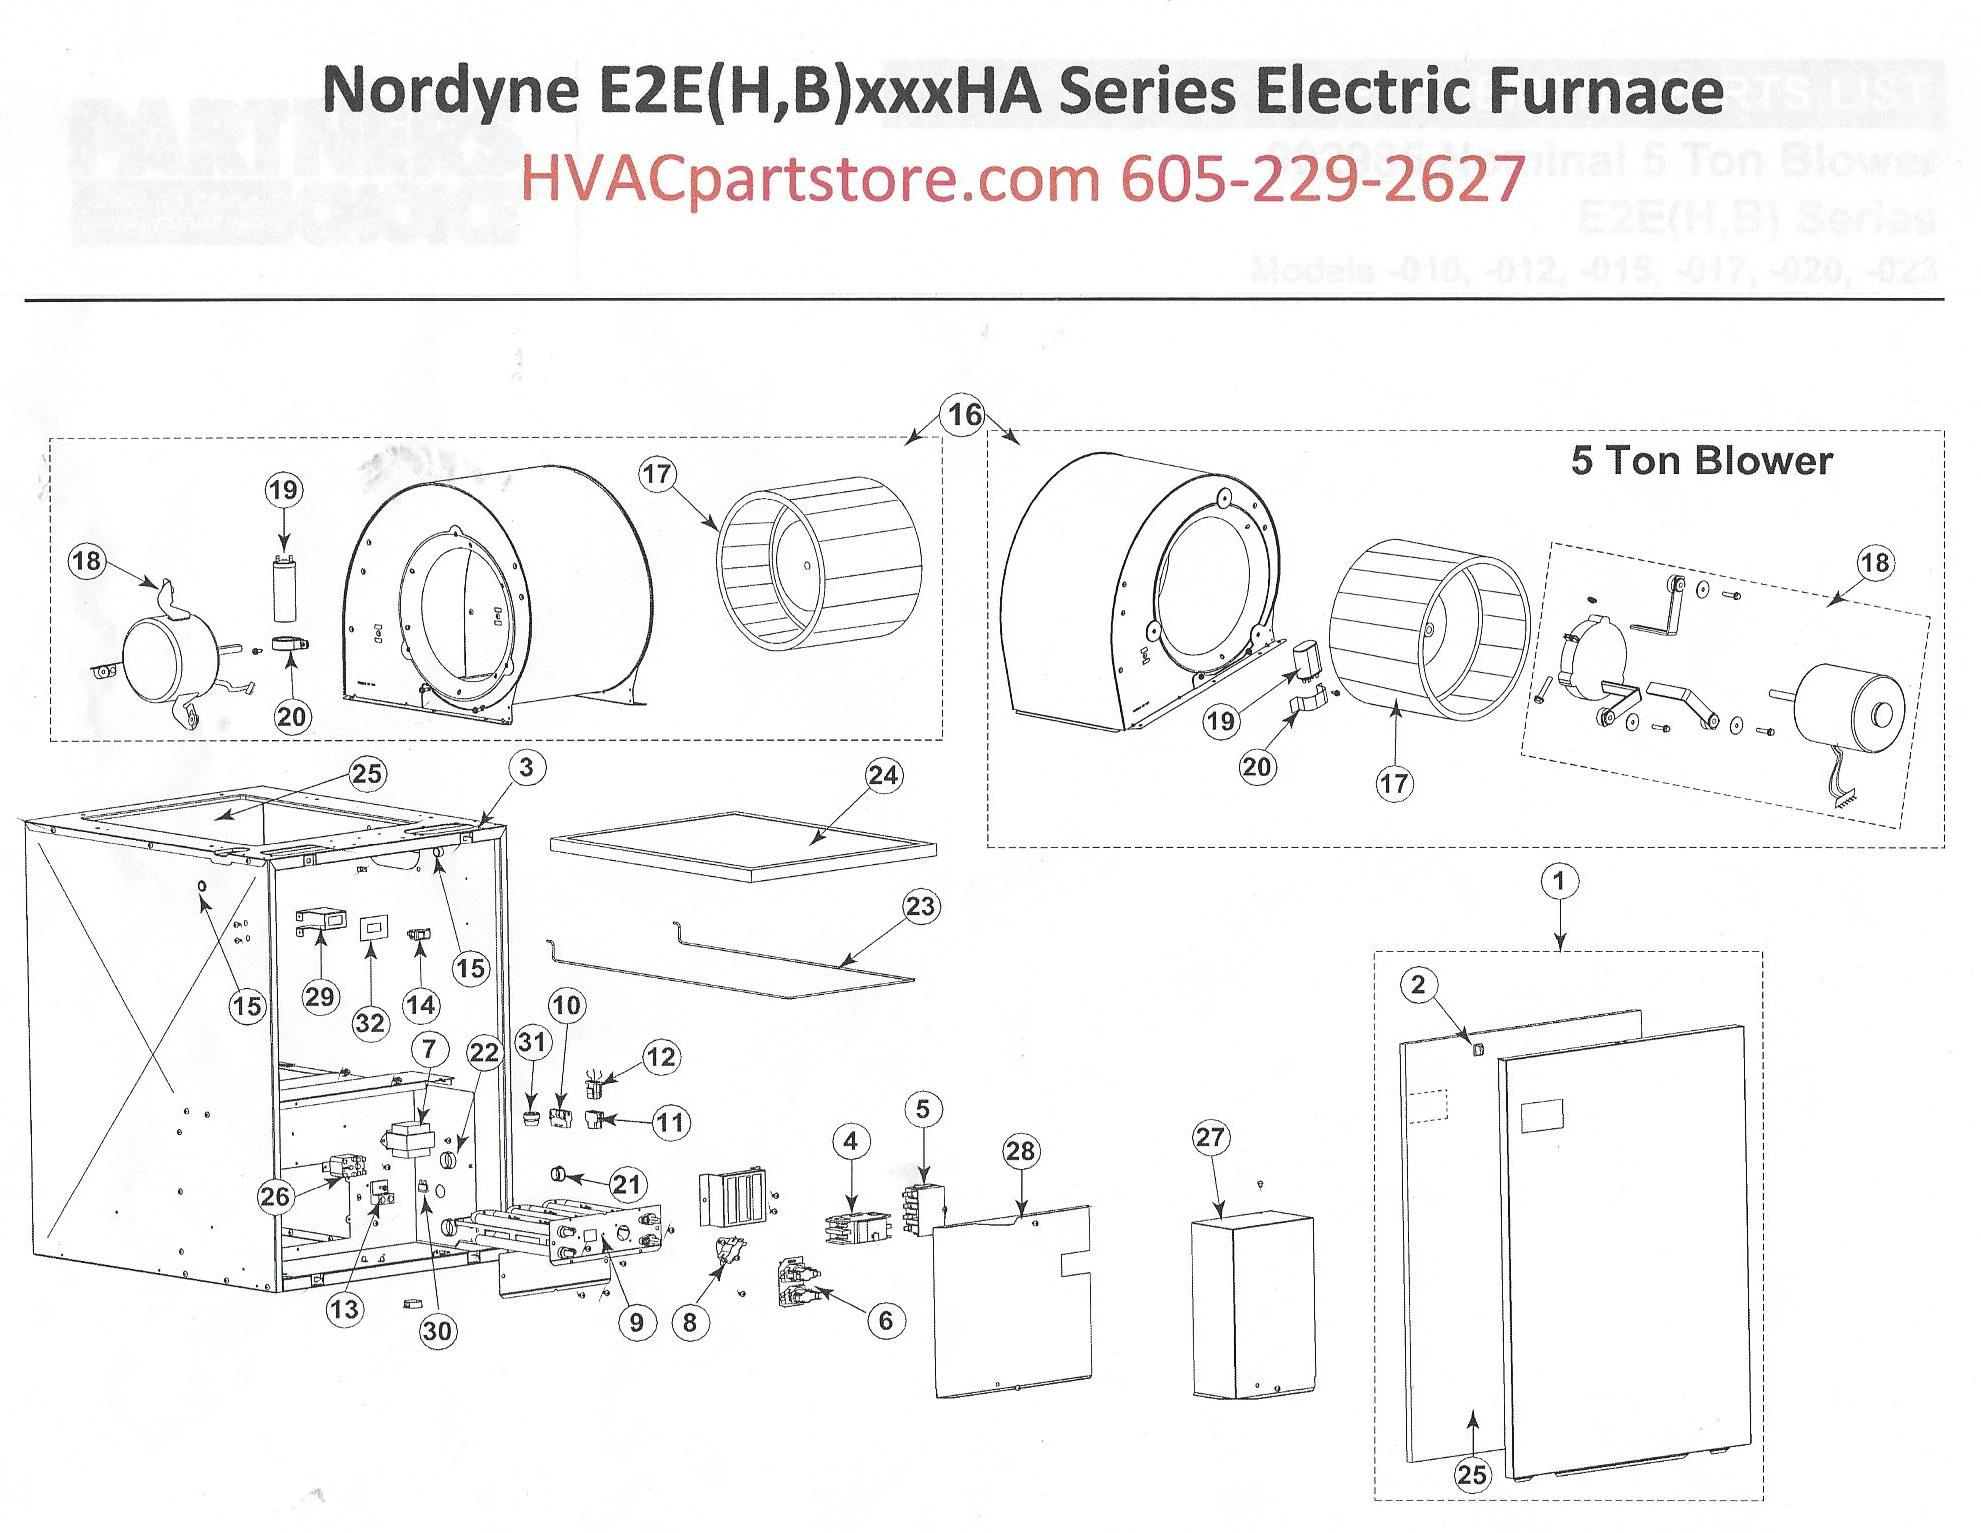 relay pr380 schematic wiring diagram e2eb012ha nordyne electric furnace parts     hvacpartstore  nordyne electric furnace parts